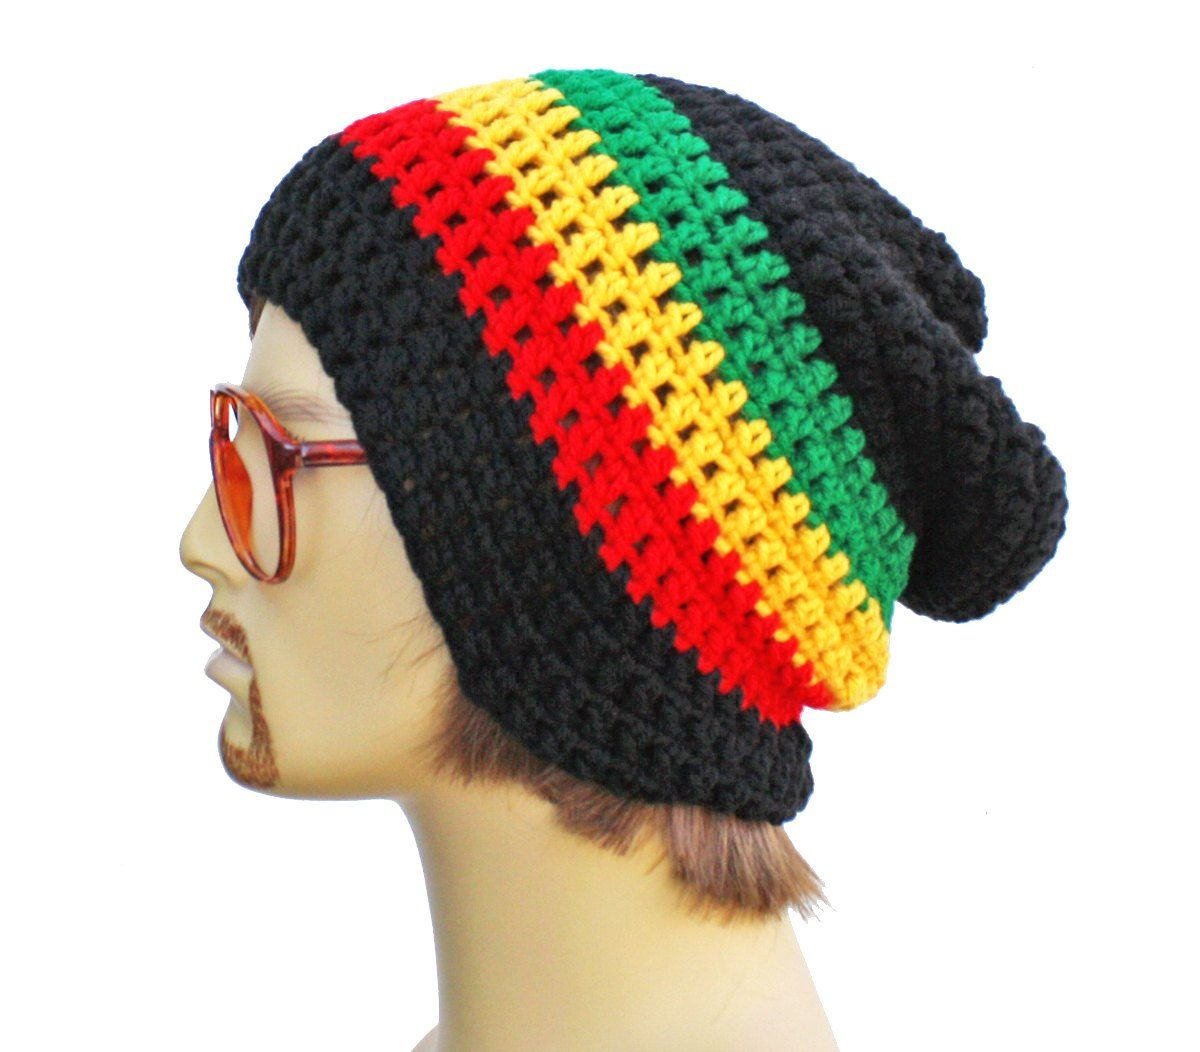 5fd993e7c7a   heather s christmas gift   Slouch Rasta Beanie Mens or Unisex - Ultimate  Slacker Striped Beanie Hat